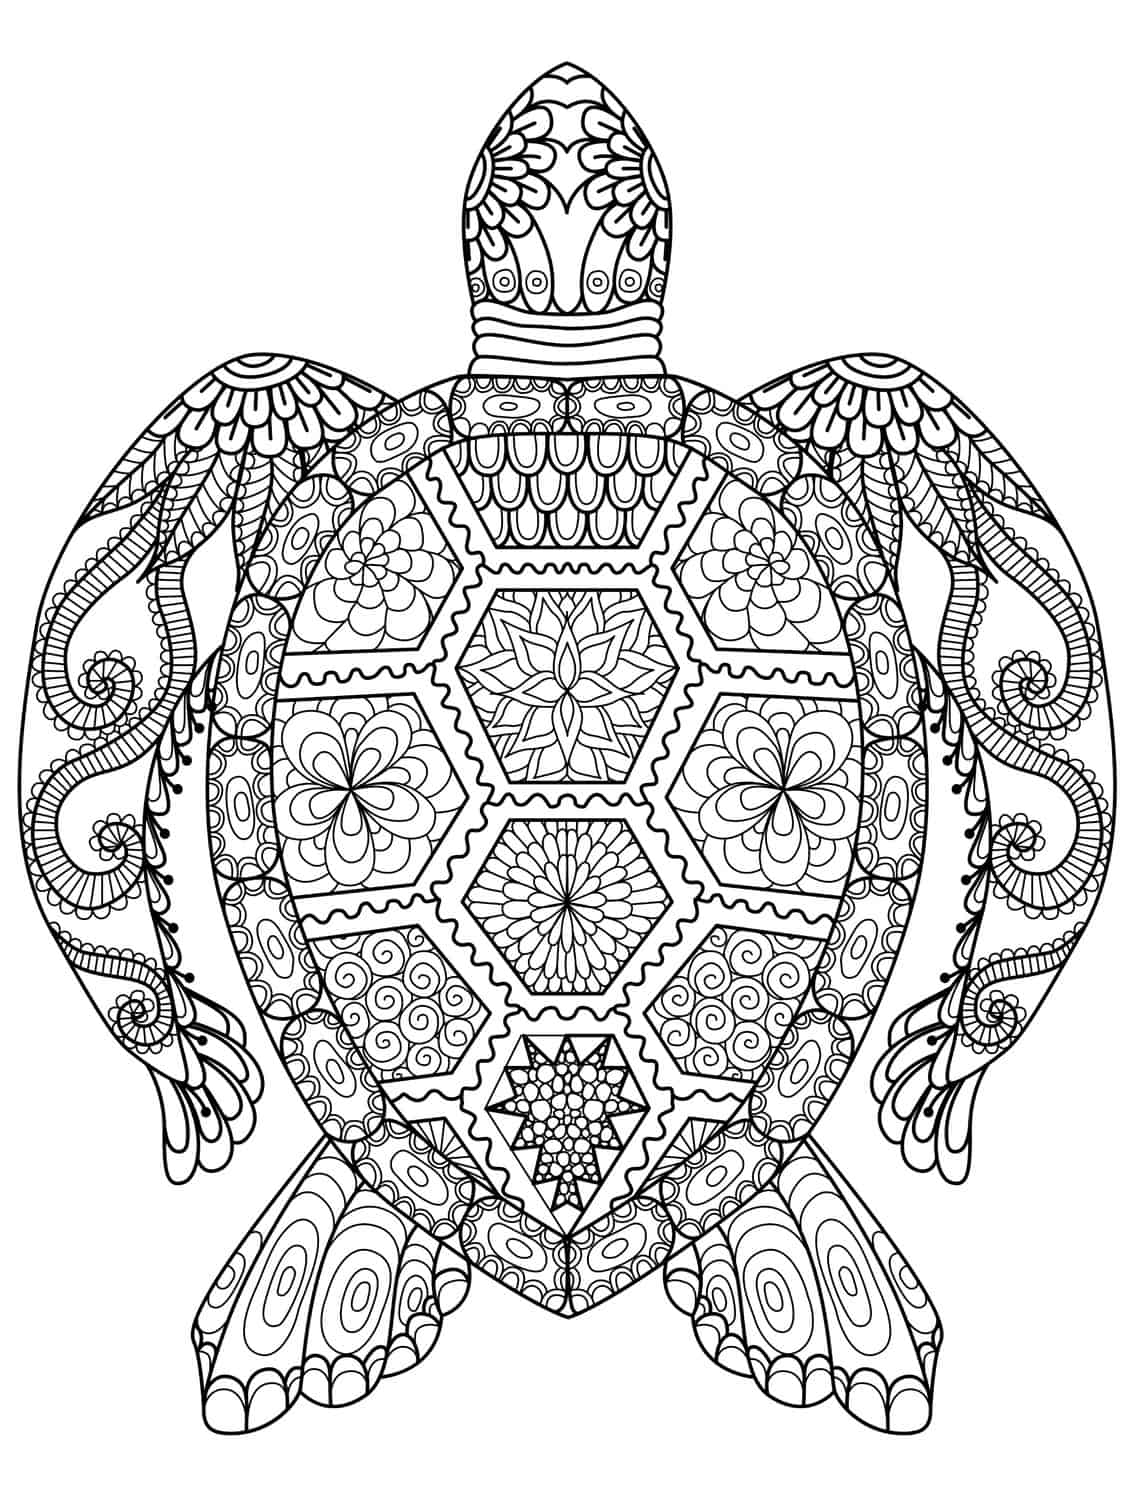 turtle coloring pages for adults turtle coloring pages for kids and adults 101 coloring turtle adults for coloring pages